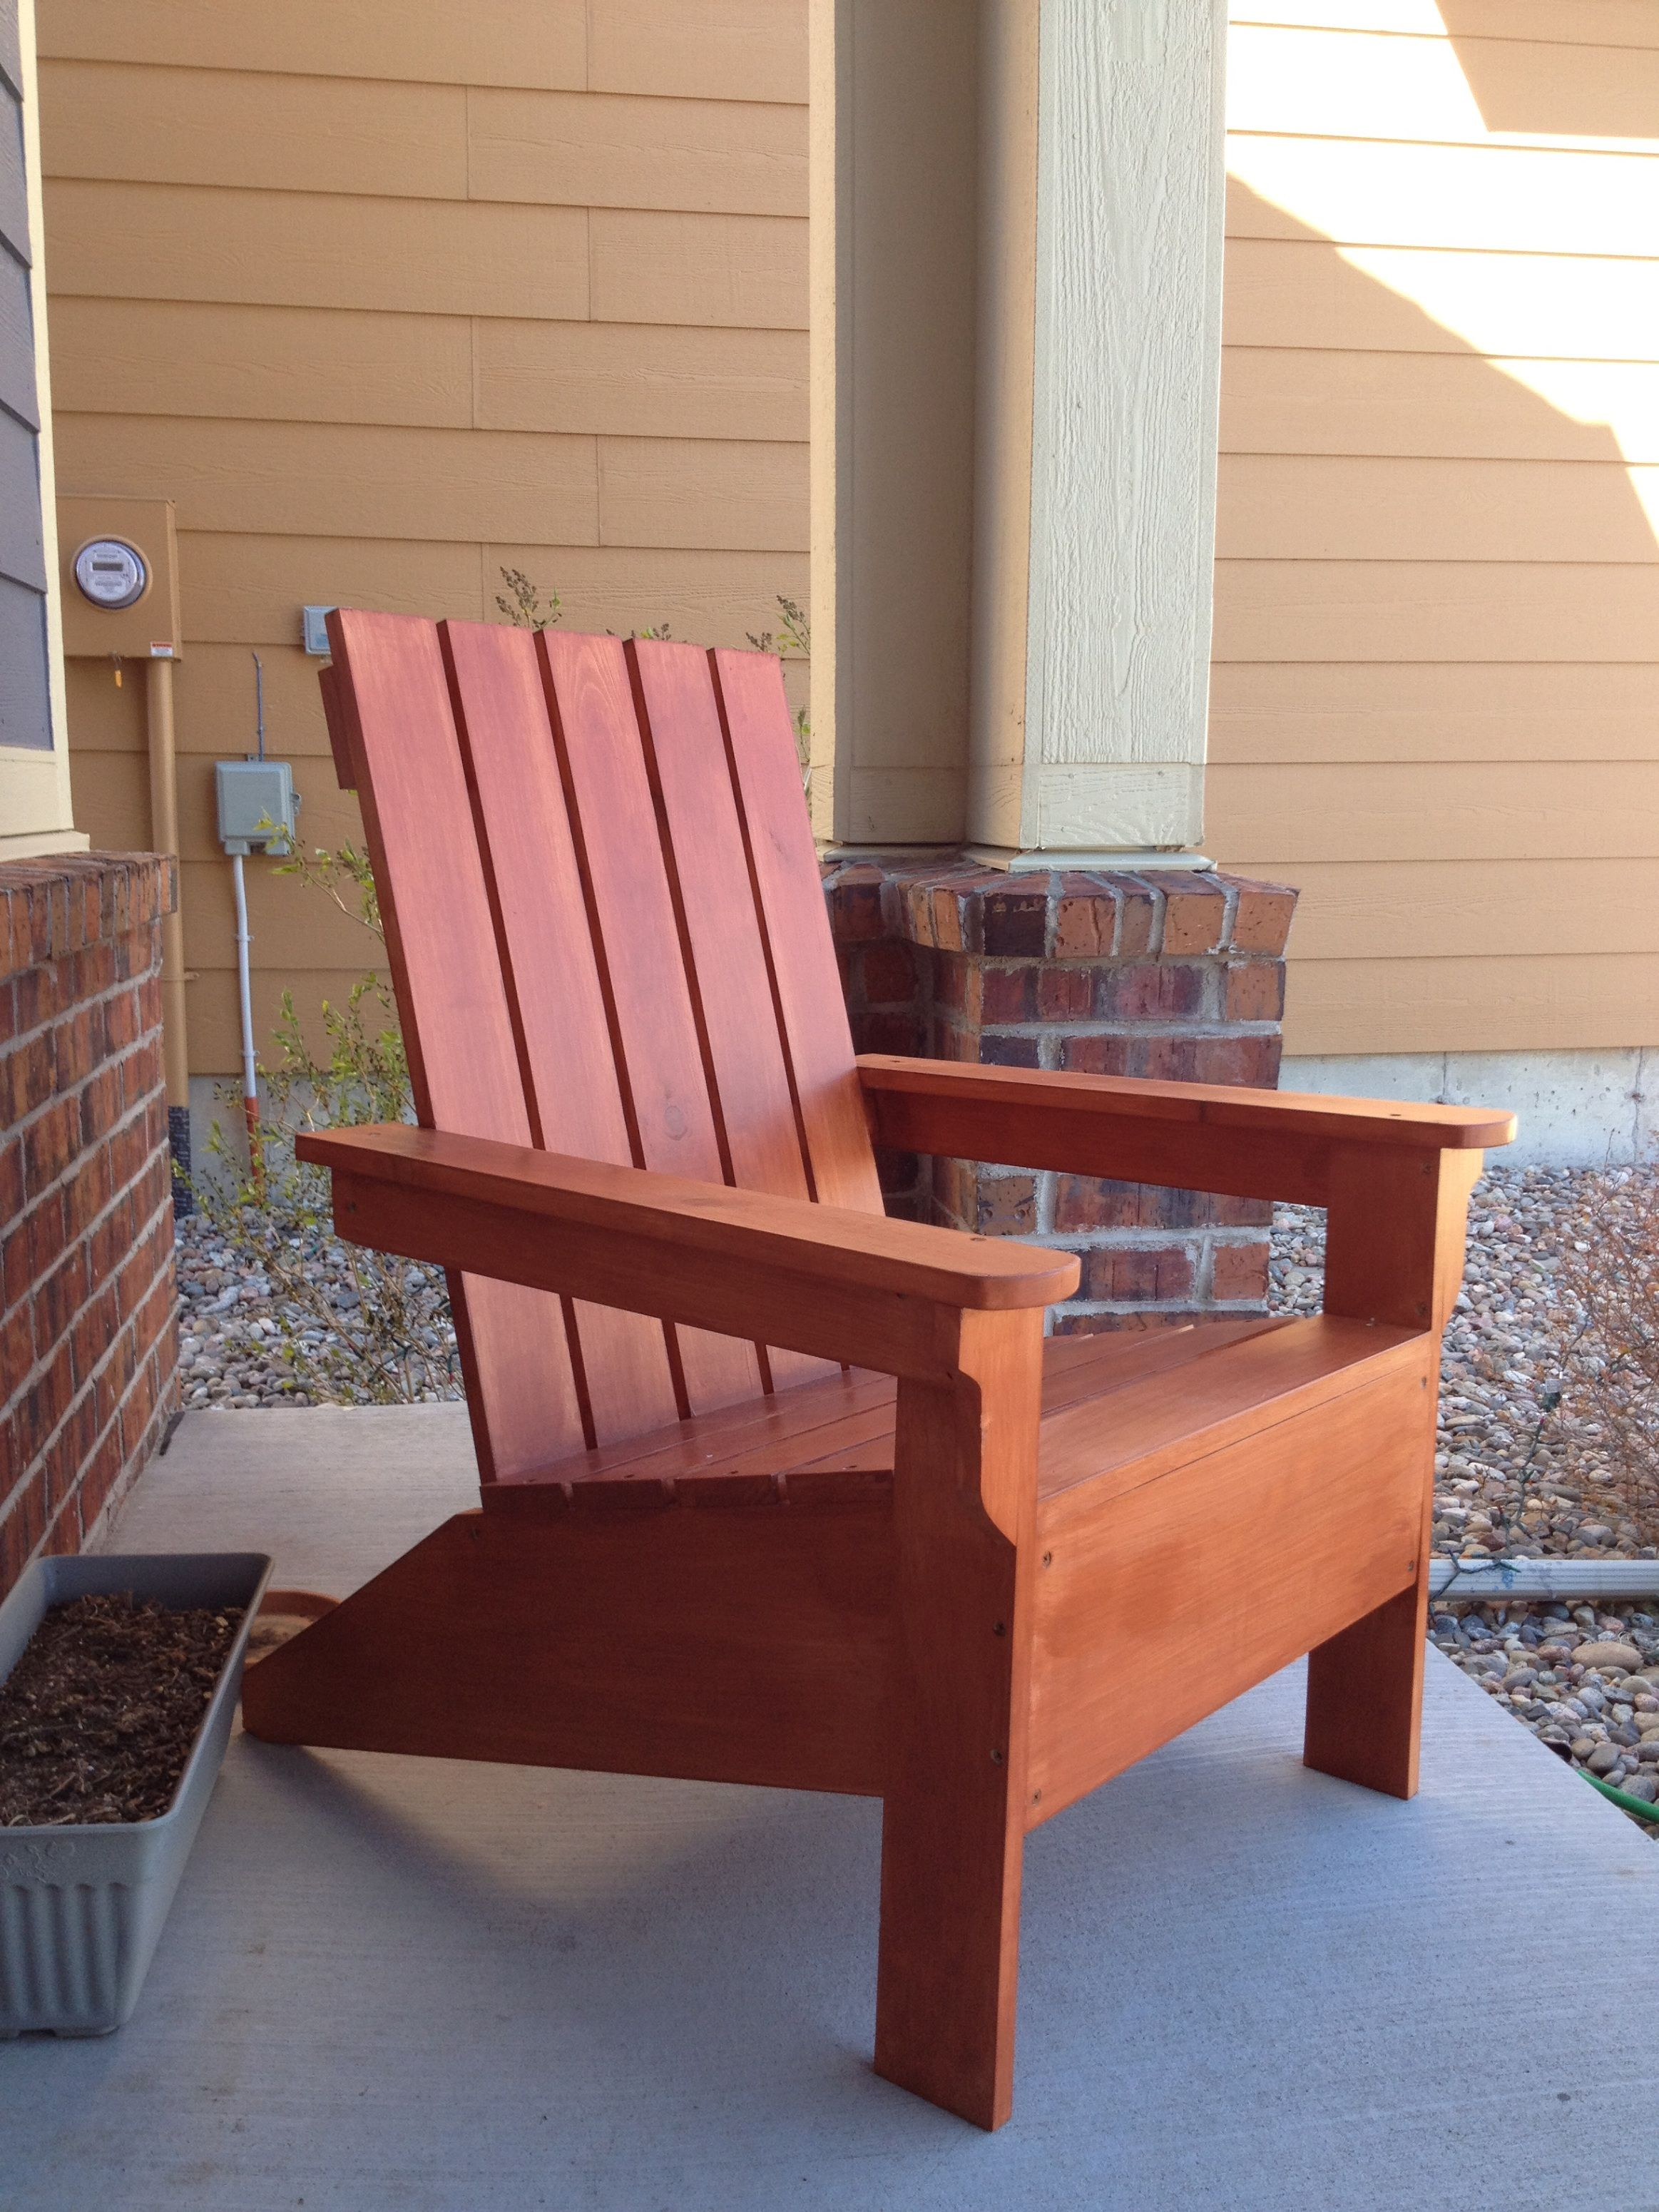 Ana White Simple Adirondack Chair DIY Projects